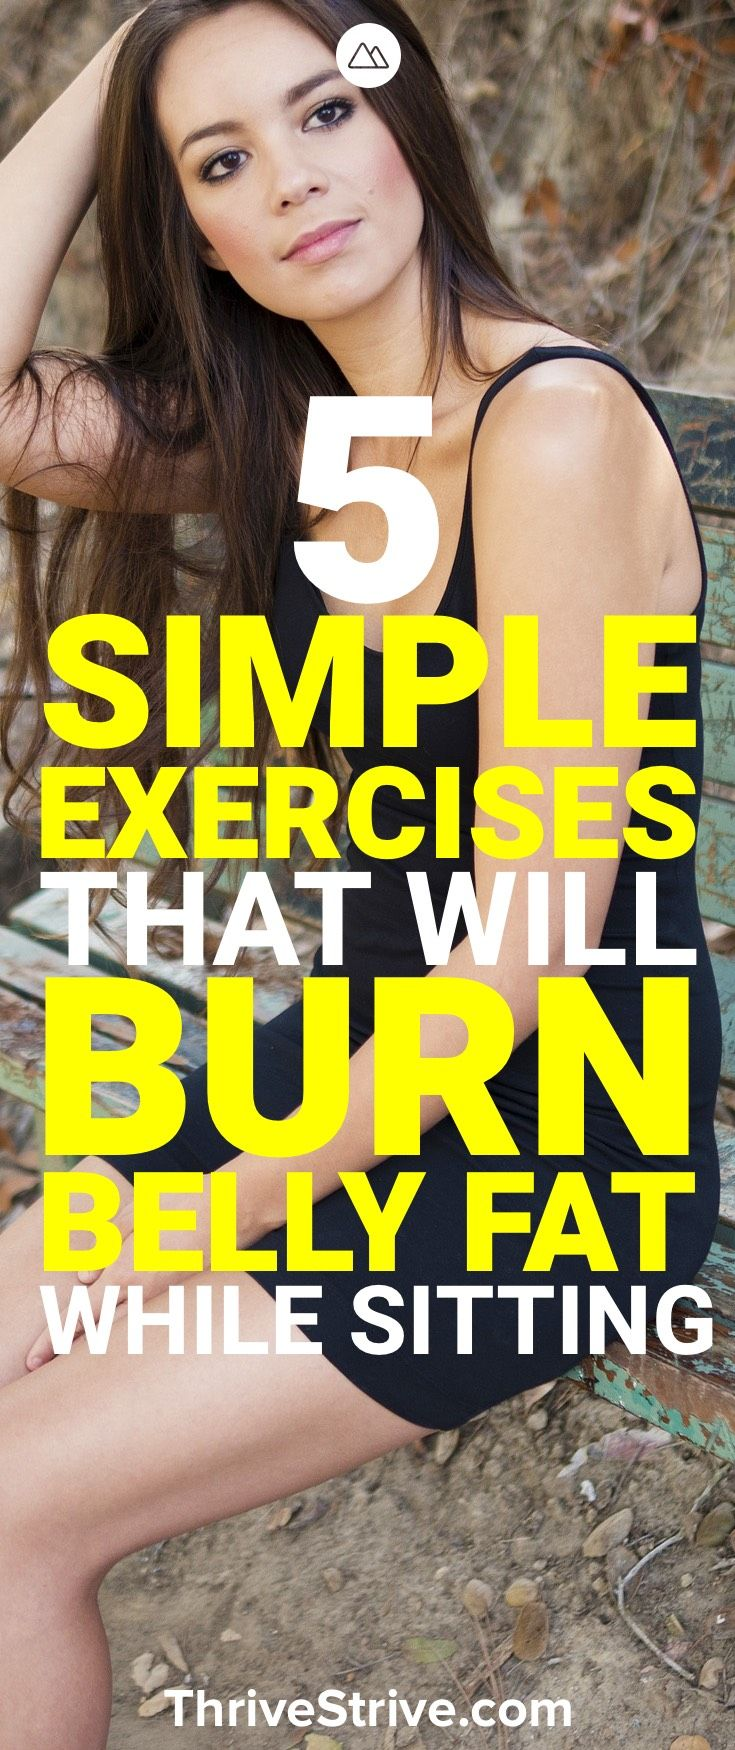 We all sit down a lot. Probably too much but that doesn't mean we can't lose weight and burn fat while sitting around. Here are 5 exercises that you can do to help burn belly fat, lose the muffin top, and get great abs.